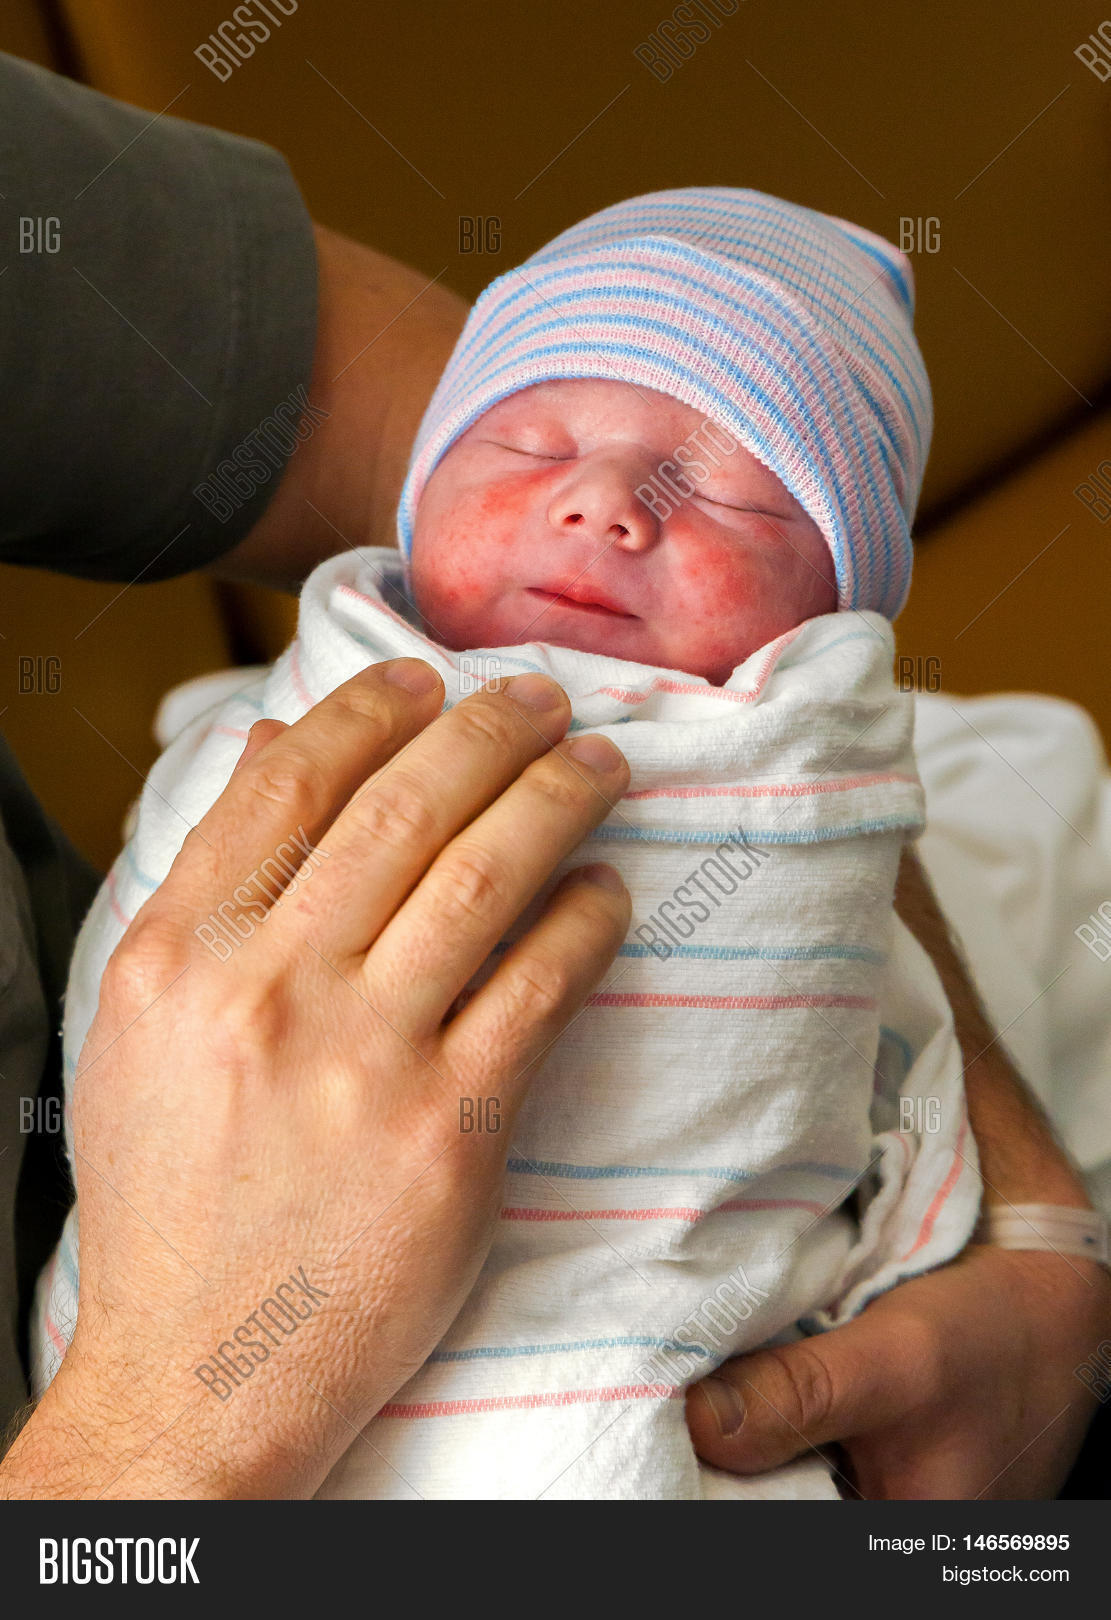 Brand New Baby Held Image & Photo (Free Trial)